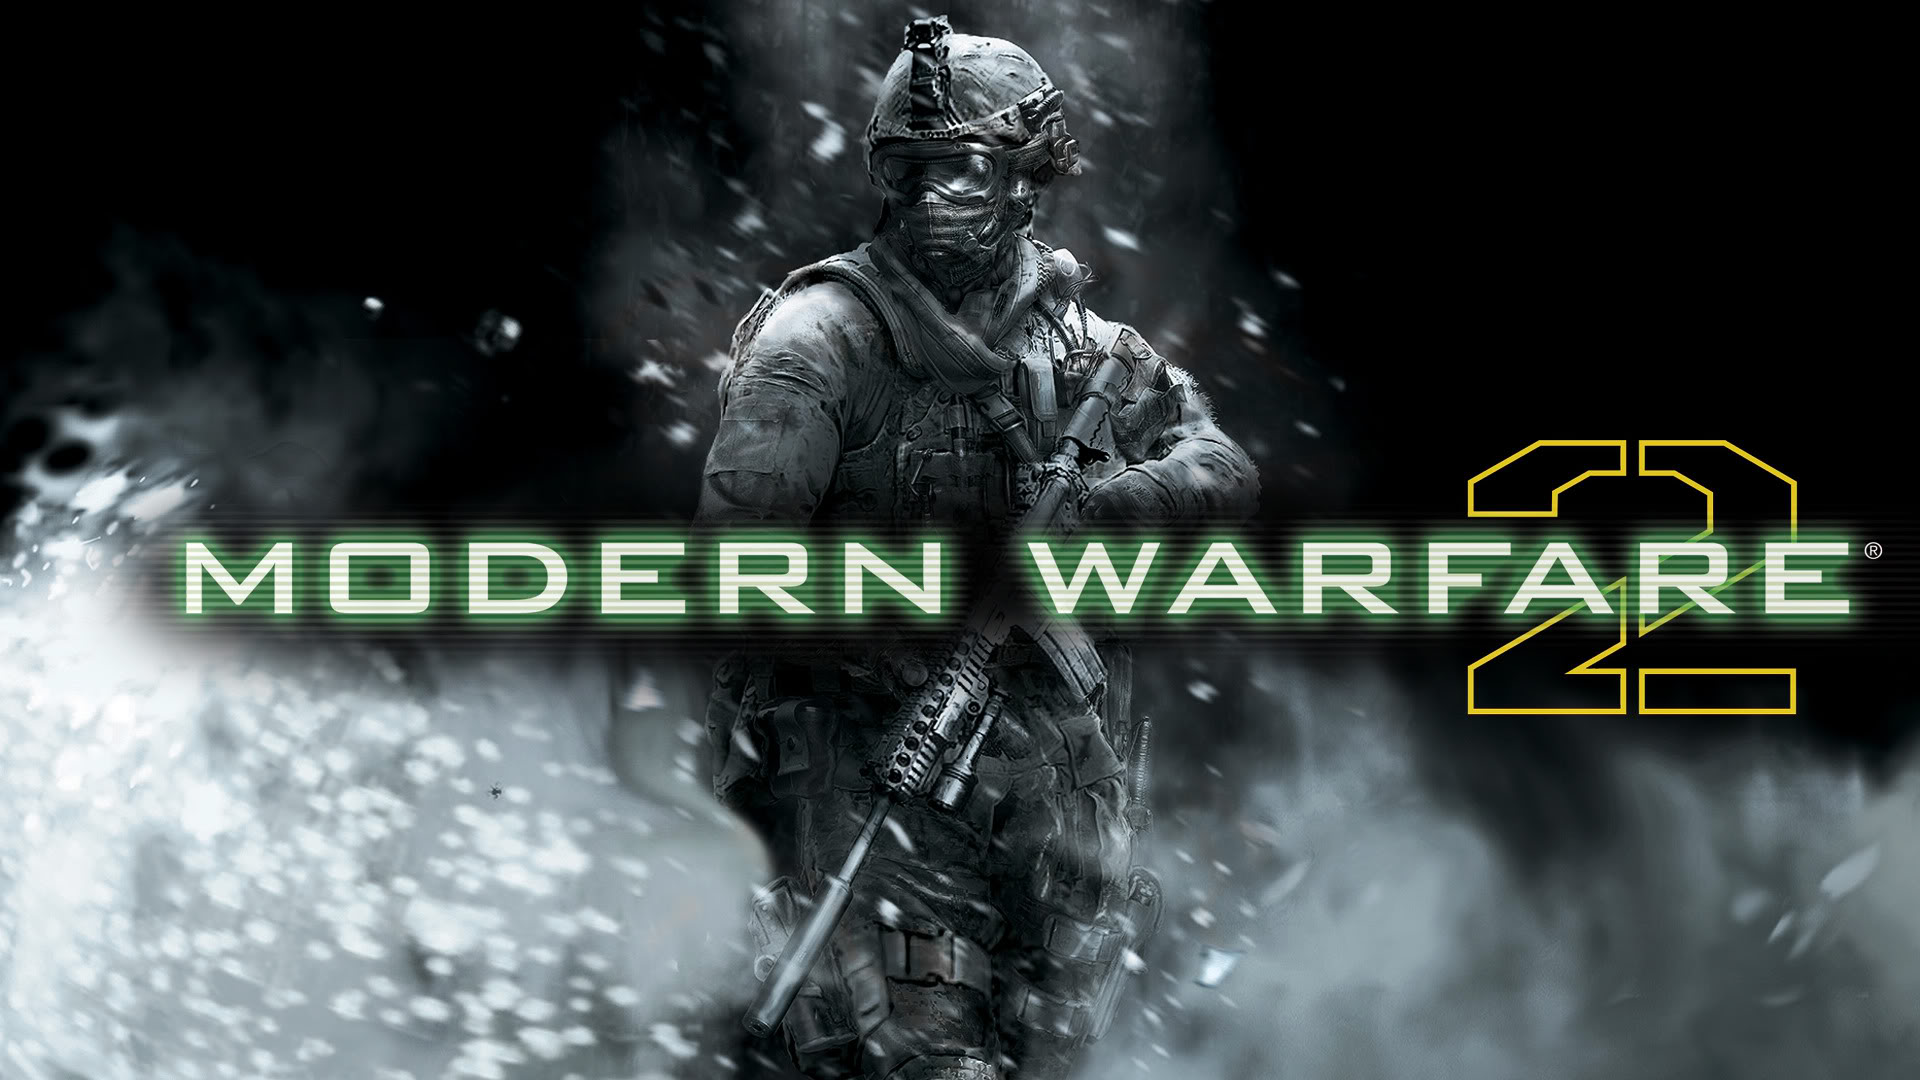 Modern-Warfare-2-wallpaper.jpg